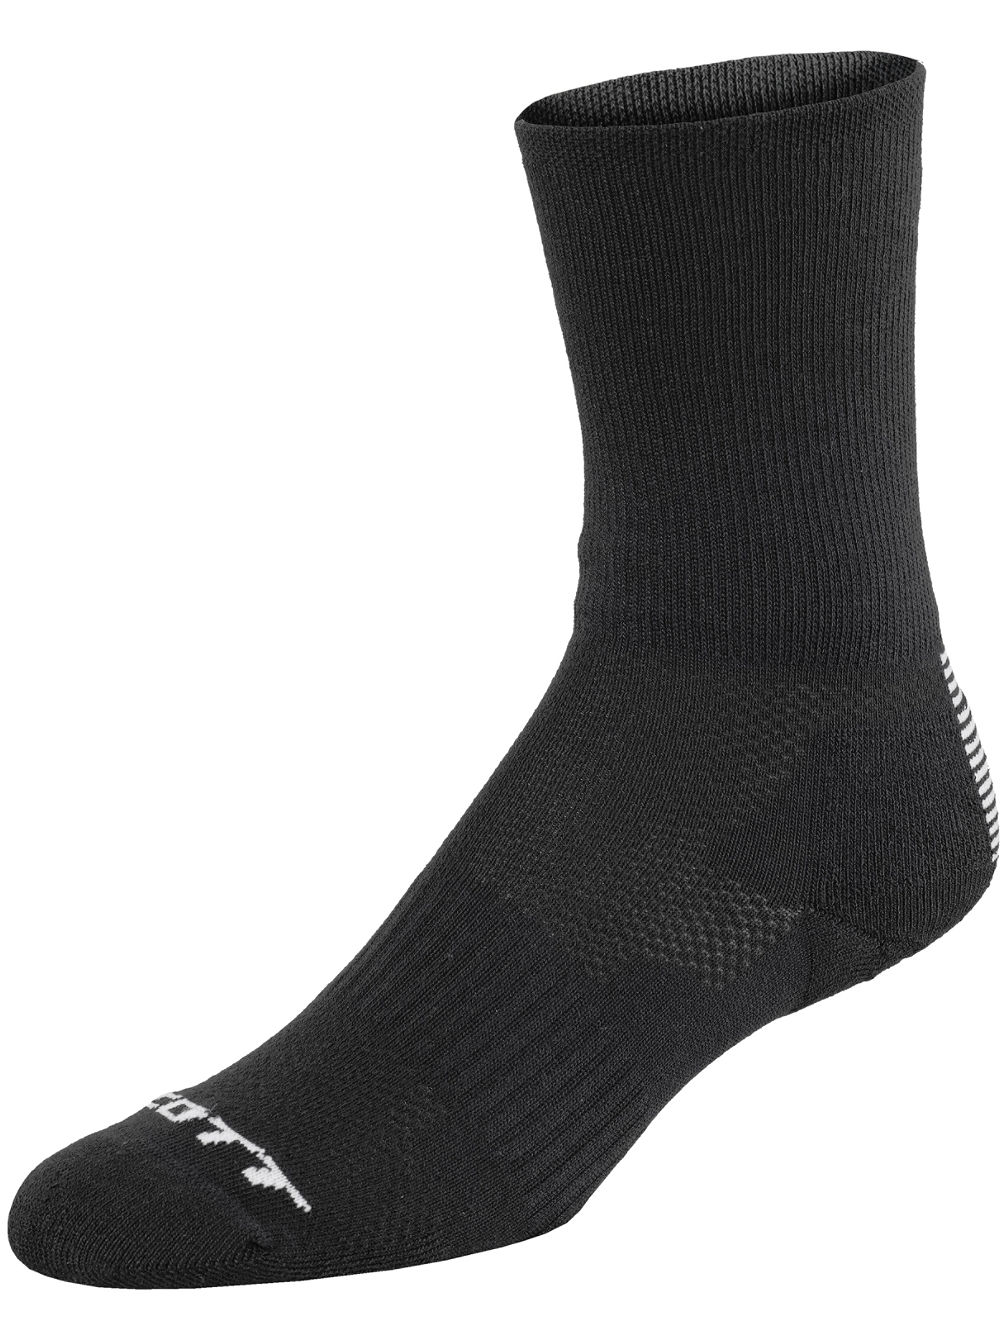 Trail Long 45-47 Socken